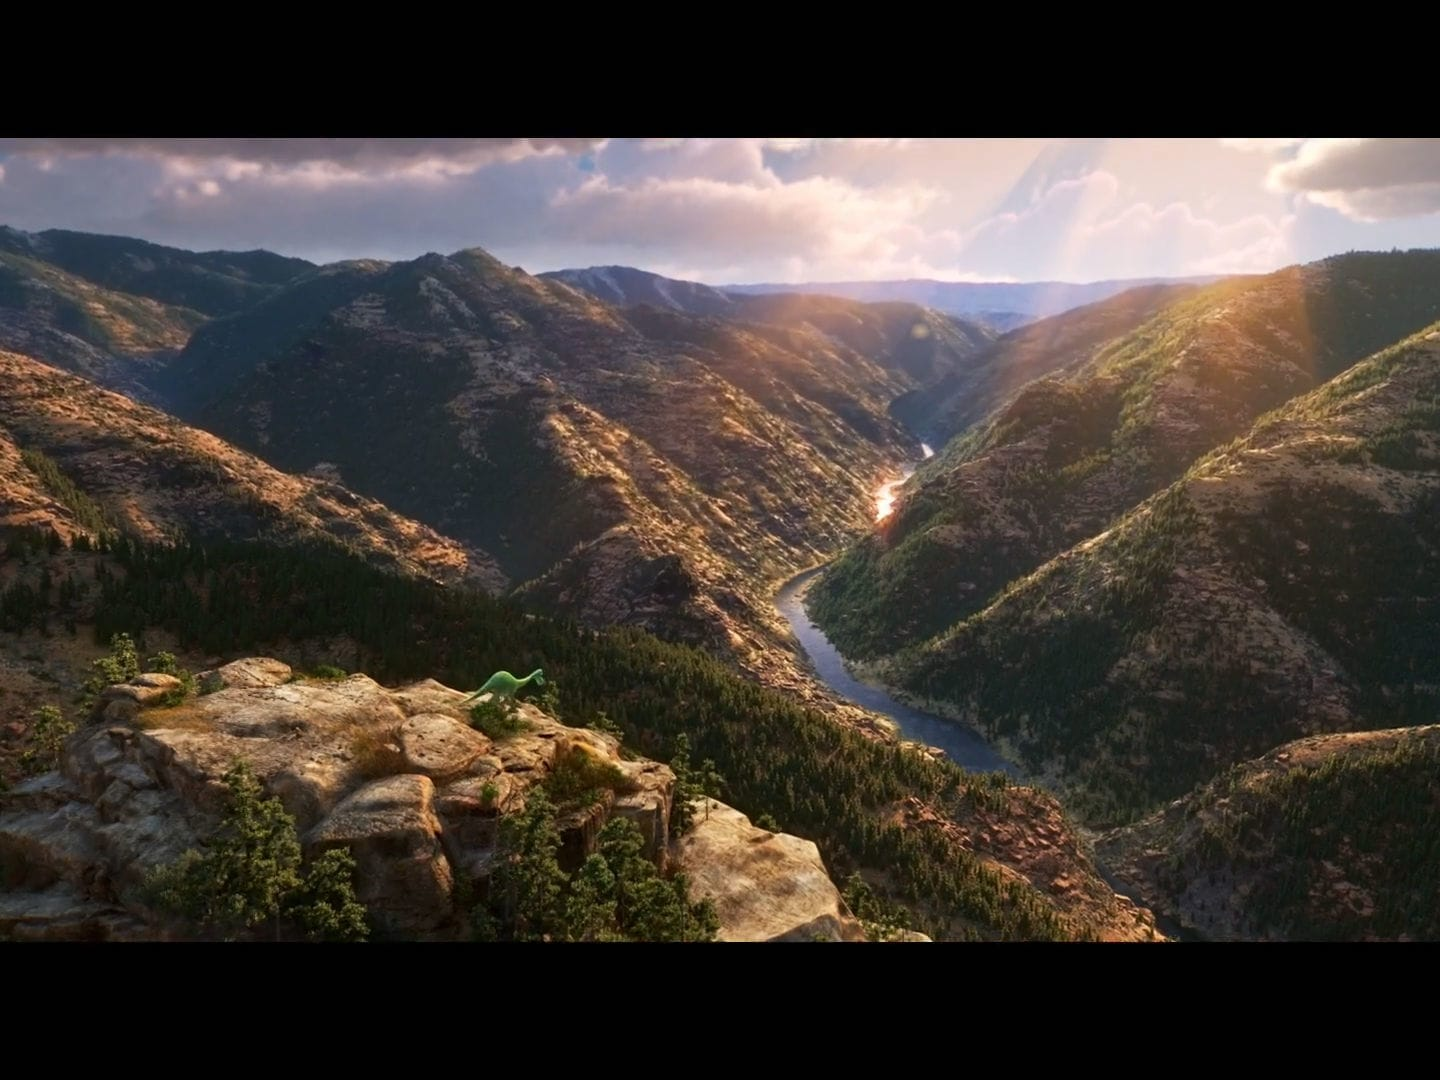 The Good Dinosaur - Technically Speaking